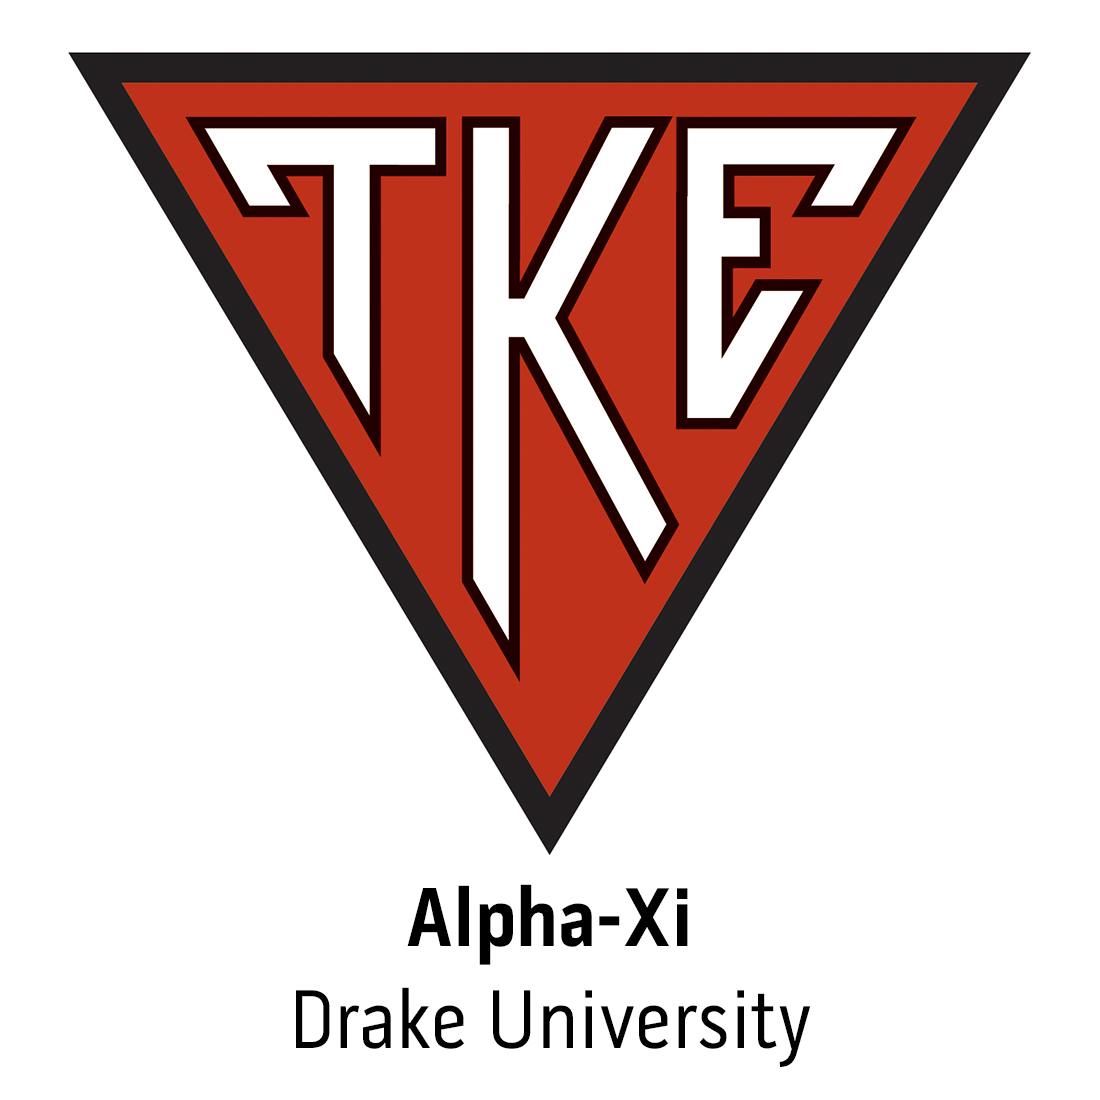 Alpha-Xi Chapter at Drake University